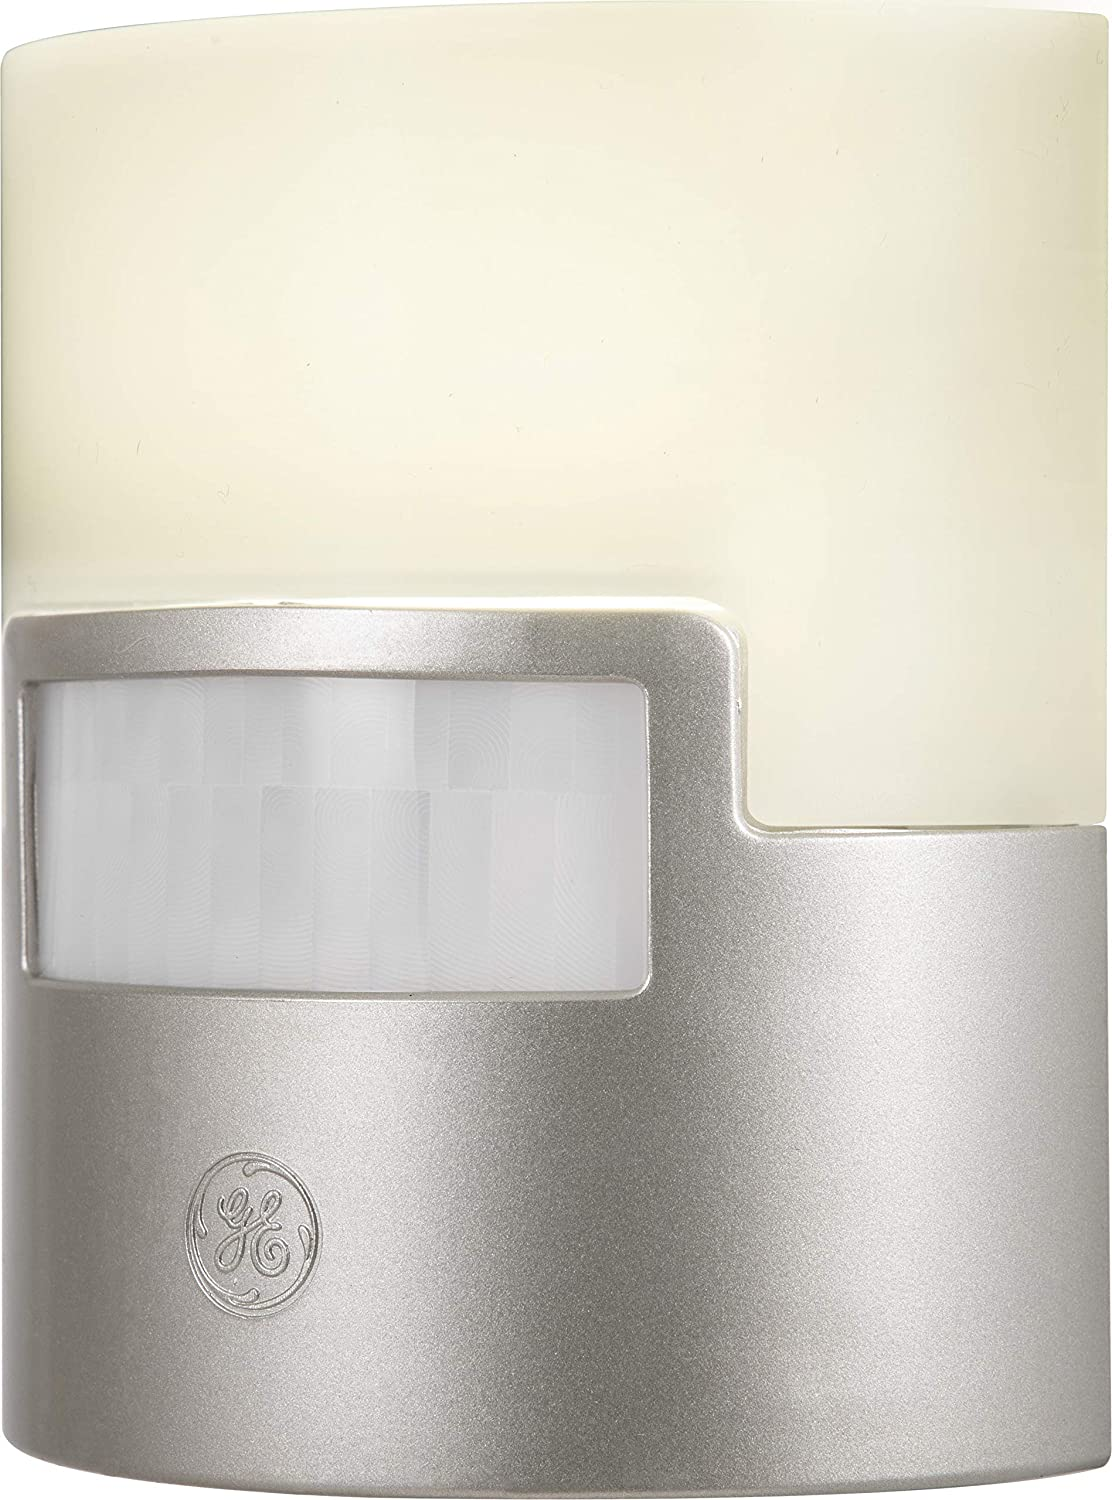 GE Ultra Brite Motion-Activated LED, 40 Lumens, Soft White, Night Light, Energy Efficient, Ideal for Hallway, Stairs, Kitchen, Garage, Utility, Laundry Room, Silver, 29844, 1 Pack,